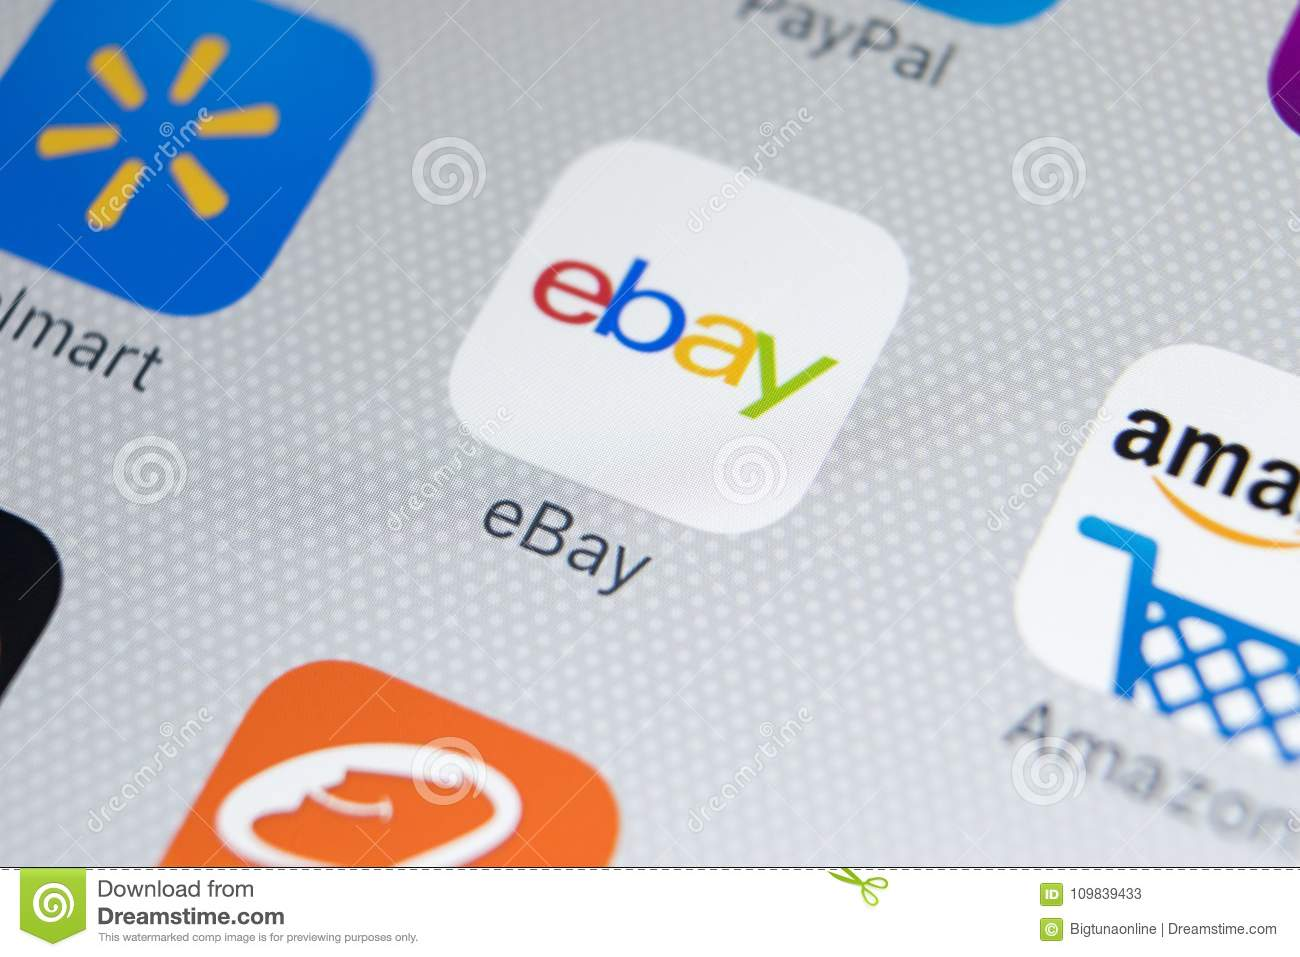 Ebay Application Icon On Apple Iphone X Screen Close Up Ebay App Icon Ebay Com Is Largest Online Auction And Shopping Websites Editorial Stock Photo Image Of Application Firm 109839433